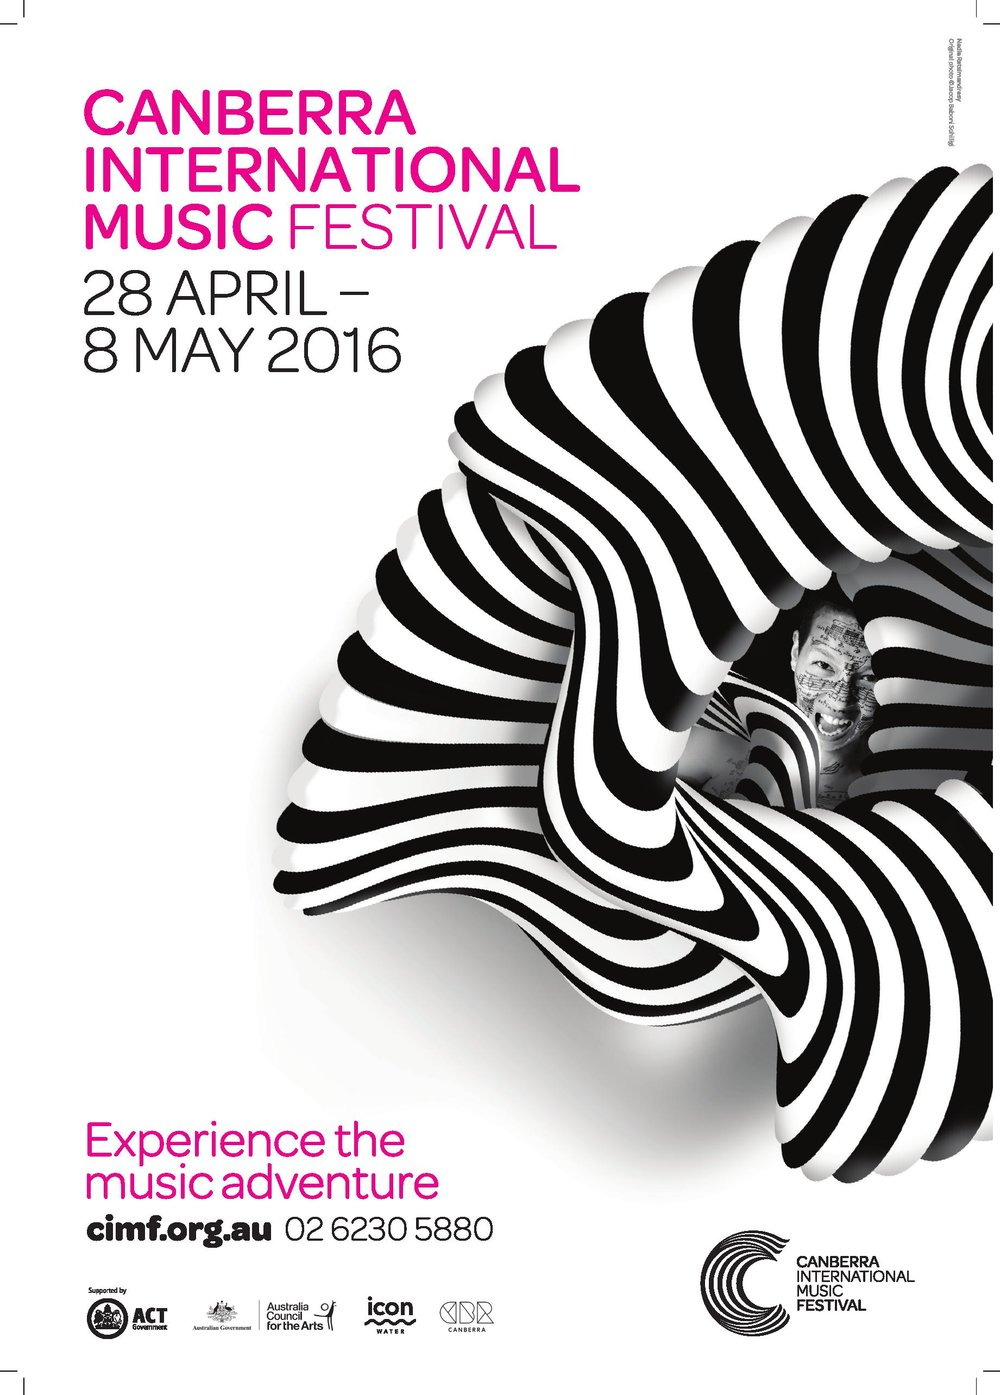 Festival Program 2016 (click on image to download)